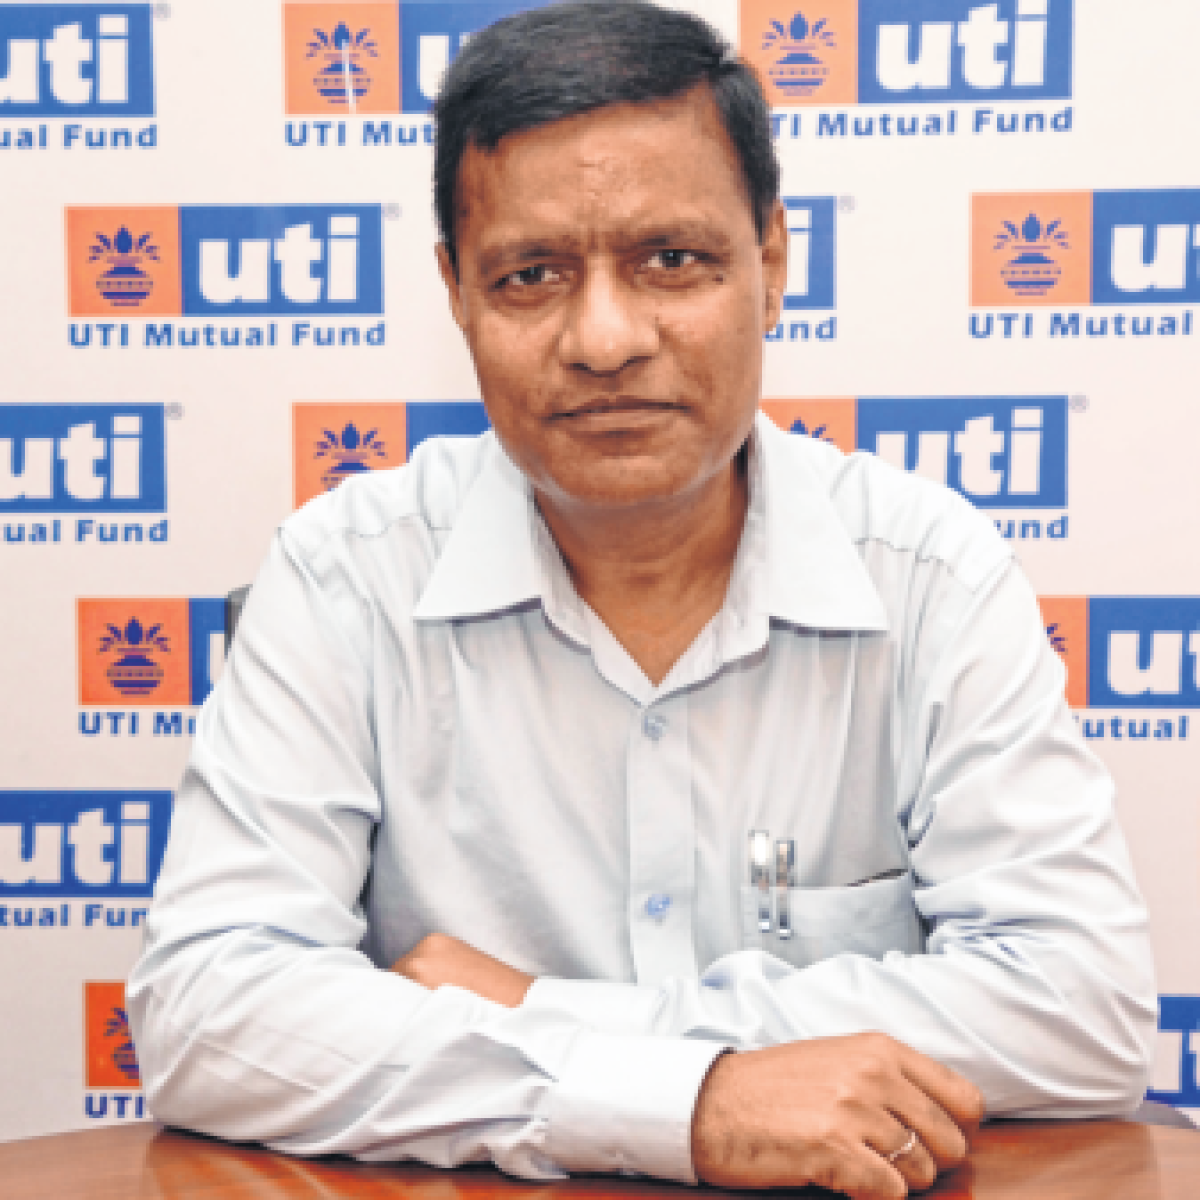 Pension Funds fastest-growing funds: Balaram Bhagat